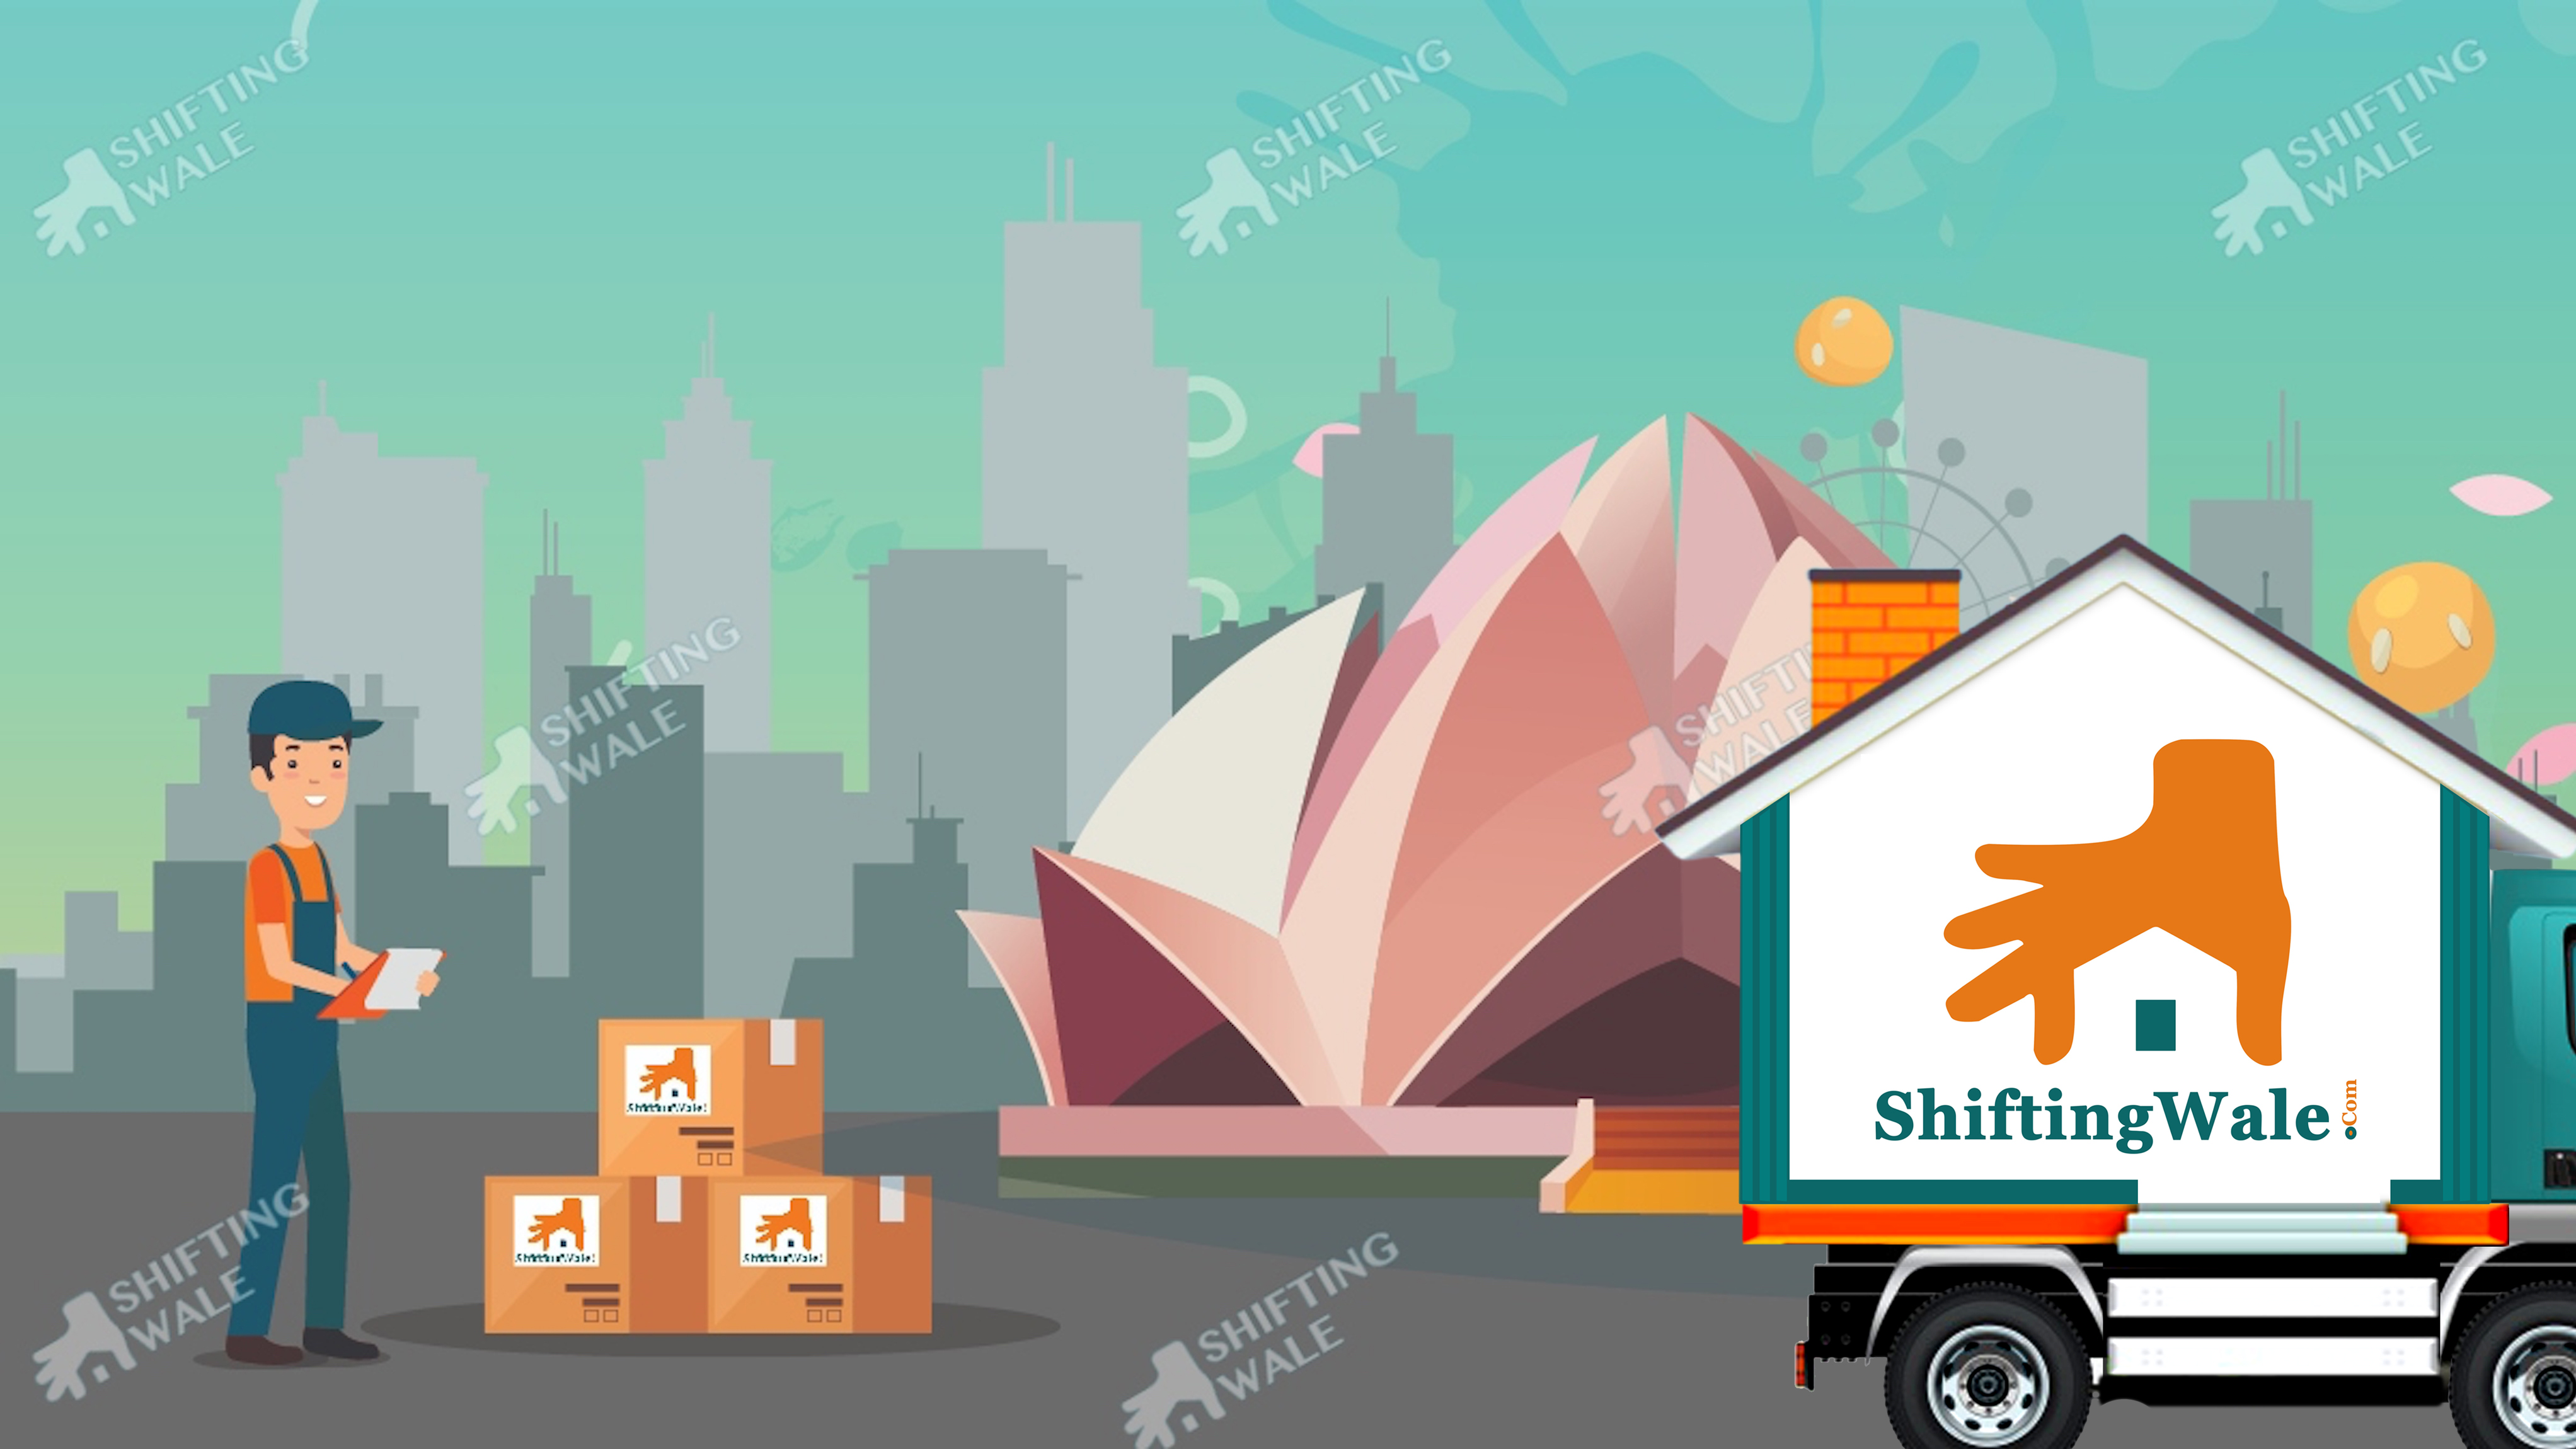 Want Packers and Movers for Household Goods Car from Delhi Gurugram Ghaziabad Noida to Ahmedabad Surat Vadodara